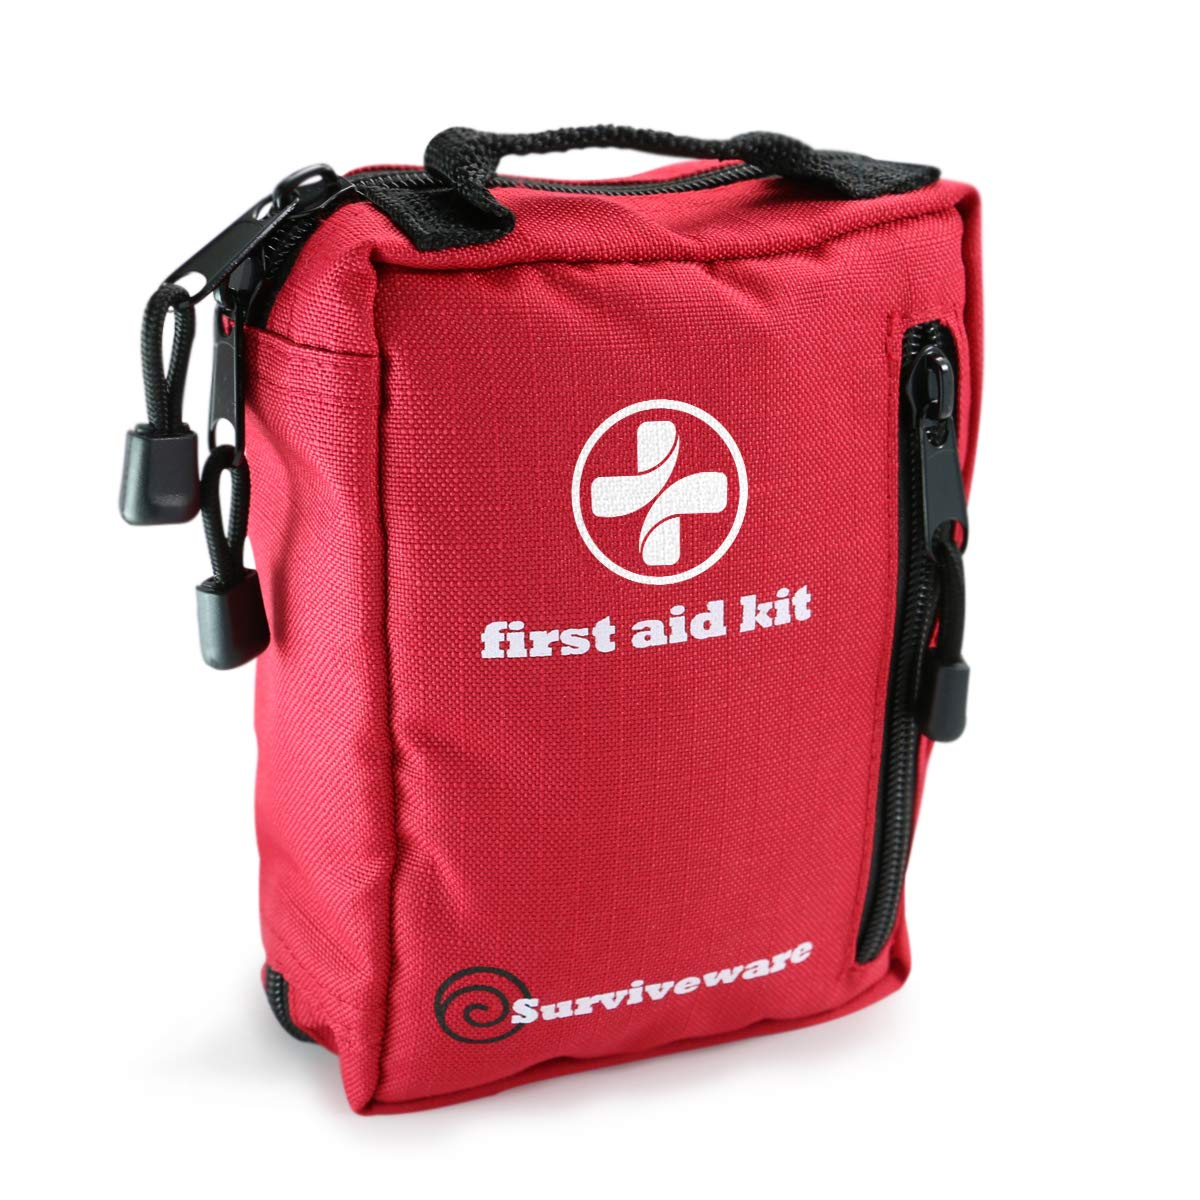 Surviveware Small First Aid Kit for Backpacking by Surviveware